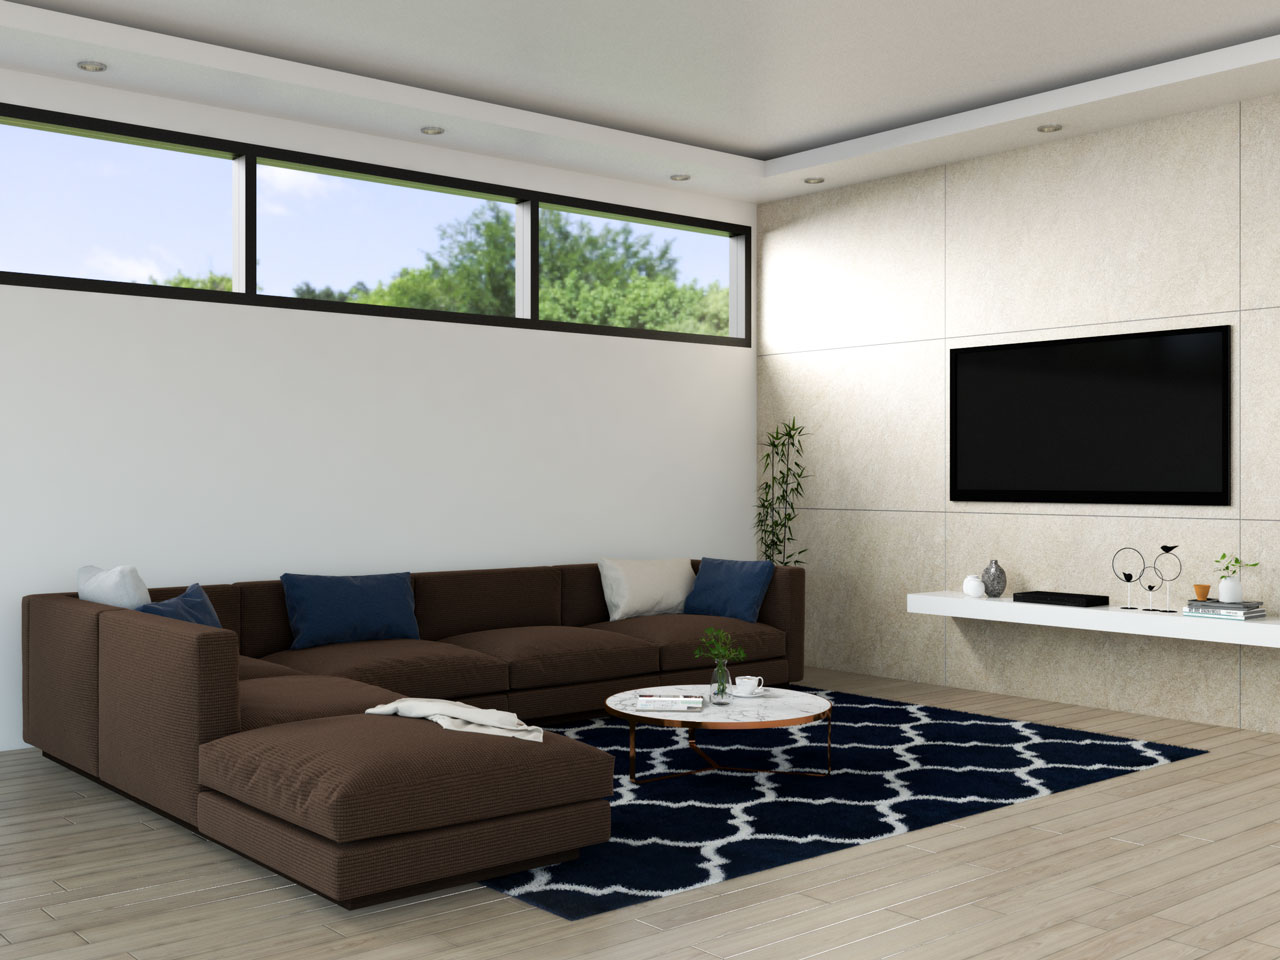 Navy and brown living room ideas